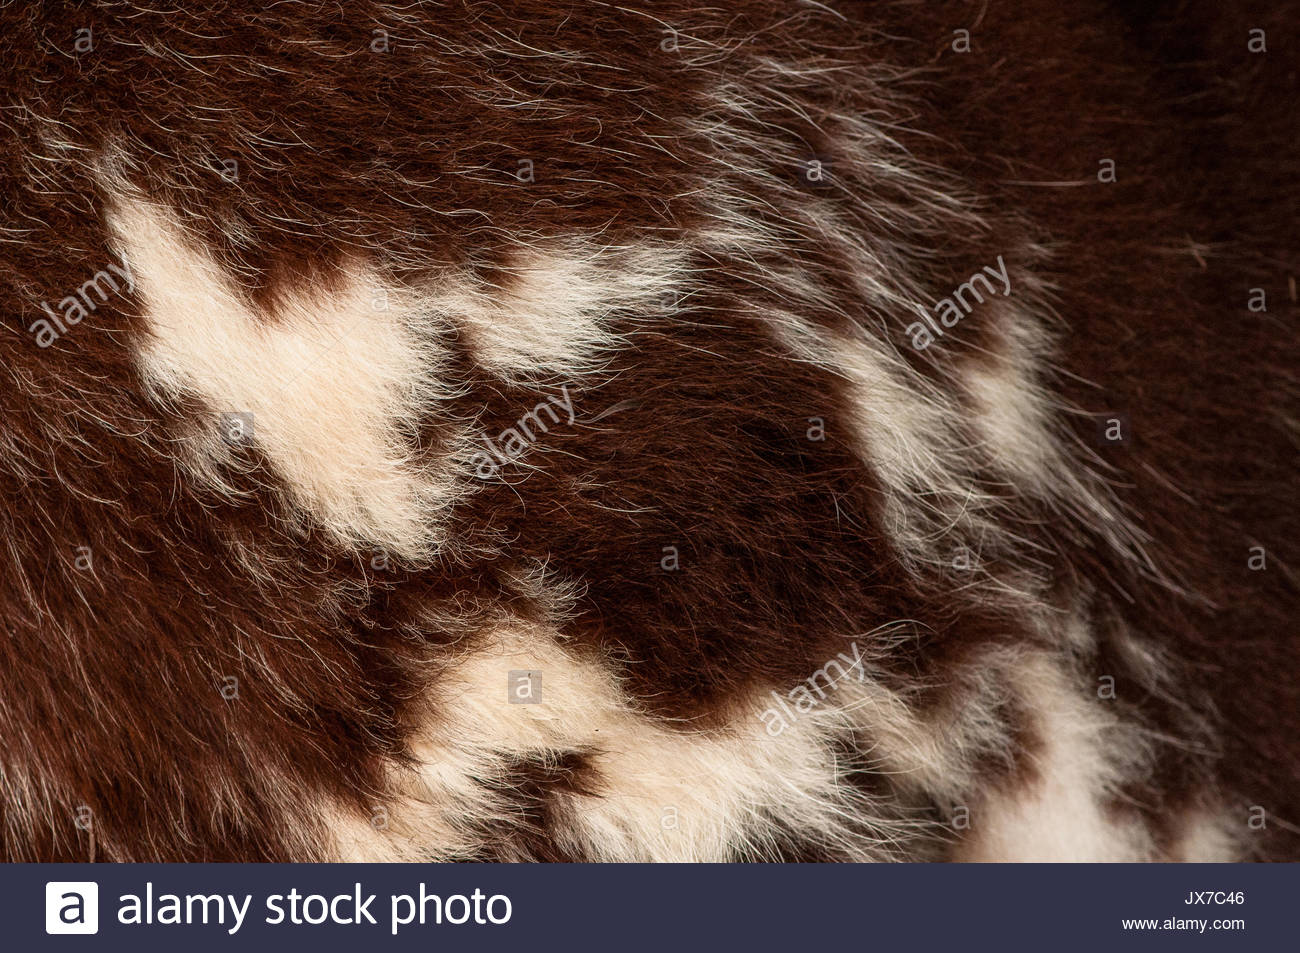 Close up of the fur of a Guernsey cow at the Montgomery County Agricultural Fair. - Stock Image